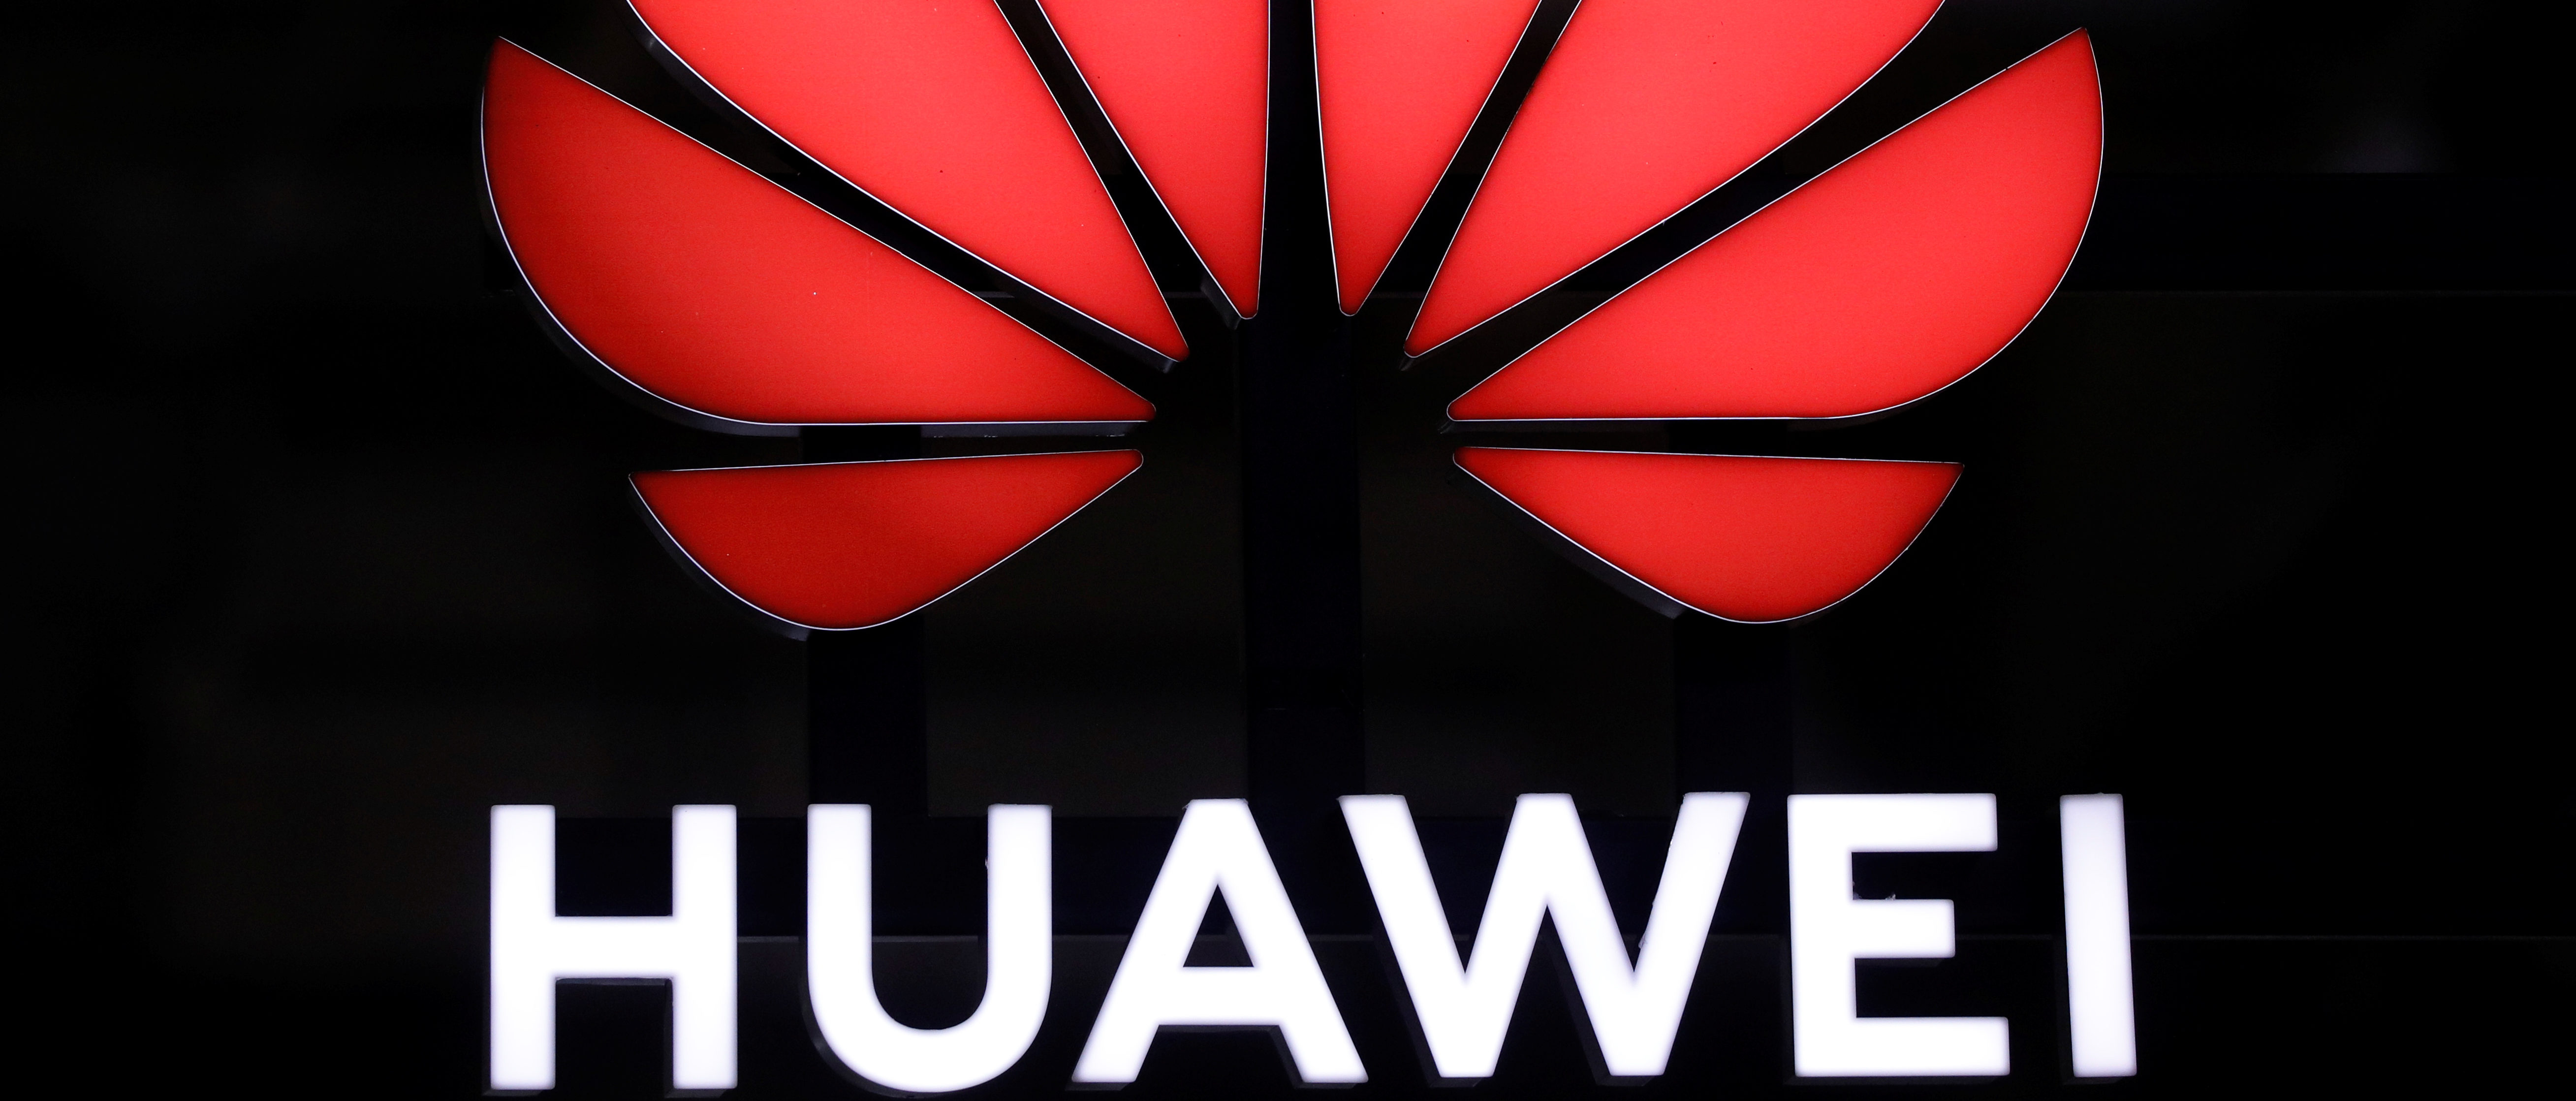 A Huawei signage is pictured at their booth at Interpol World in Singapore July 2, 2019. REUTERS/Edgar Su - RC1DE20F0440